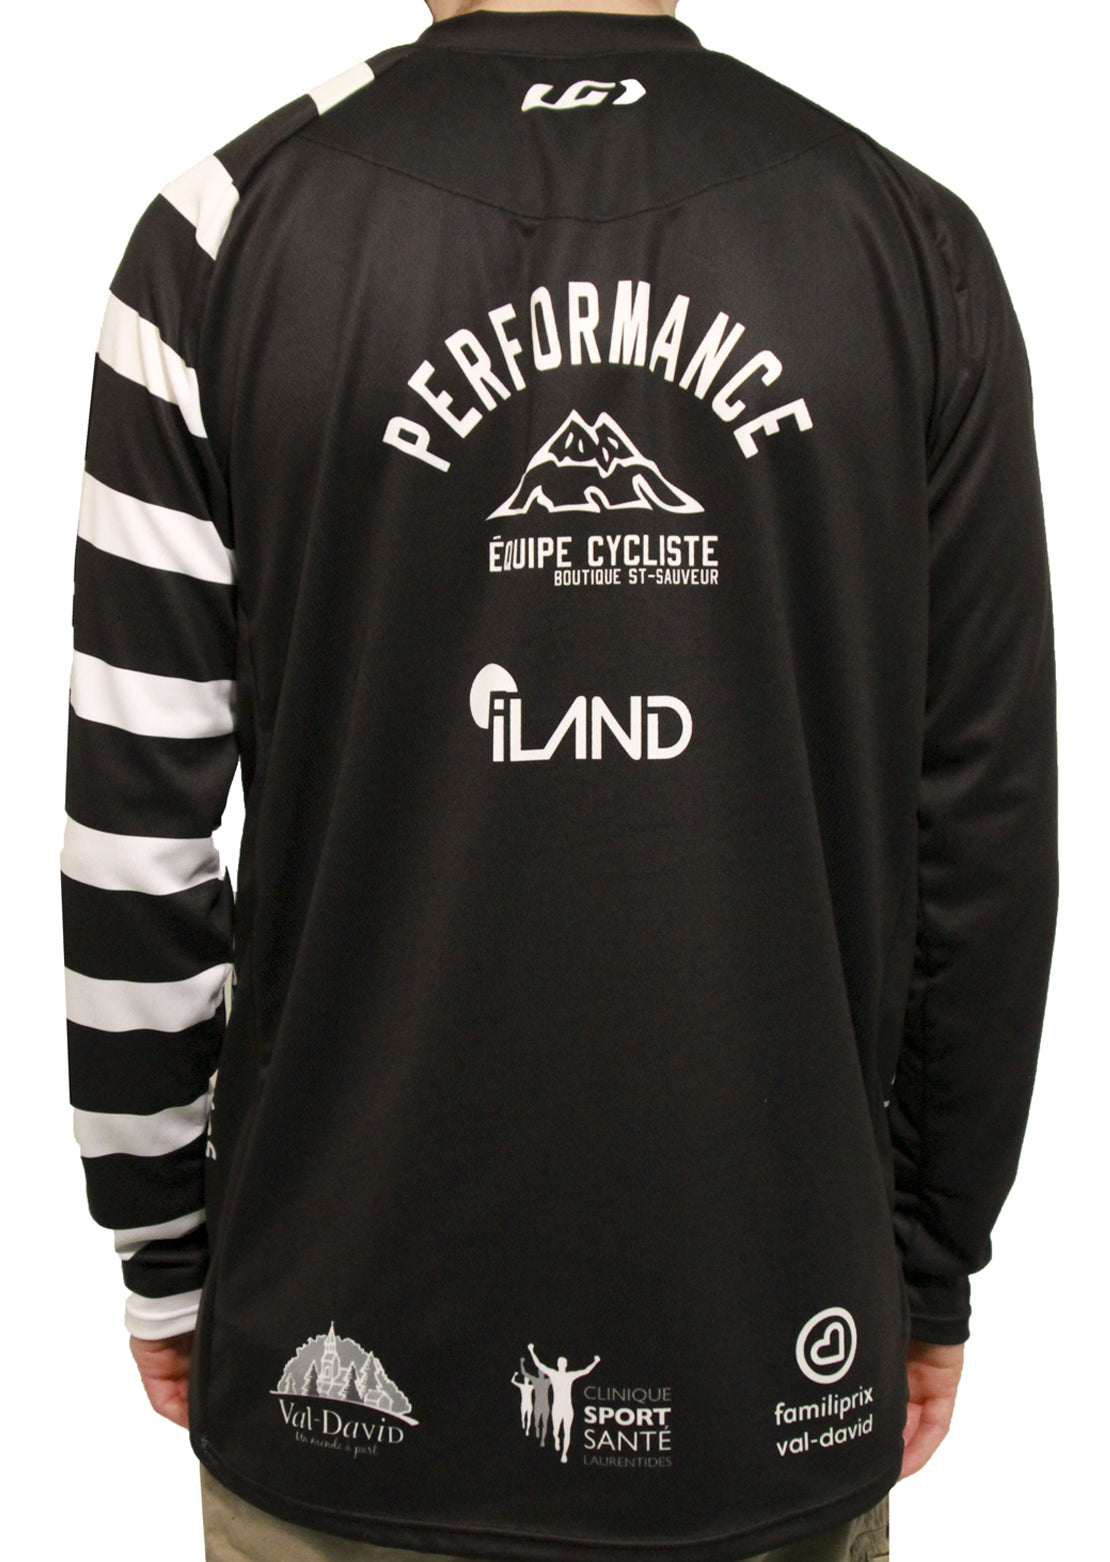 Garneau X PRFO Men's MTB Longsleeve Light Airdry Jersey Black/White